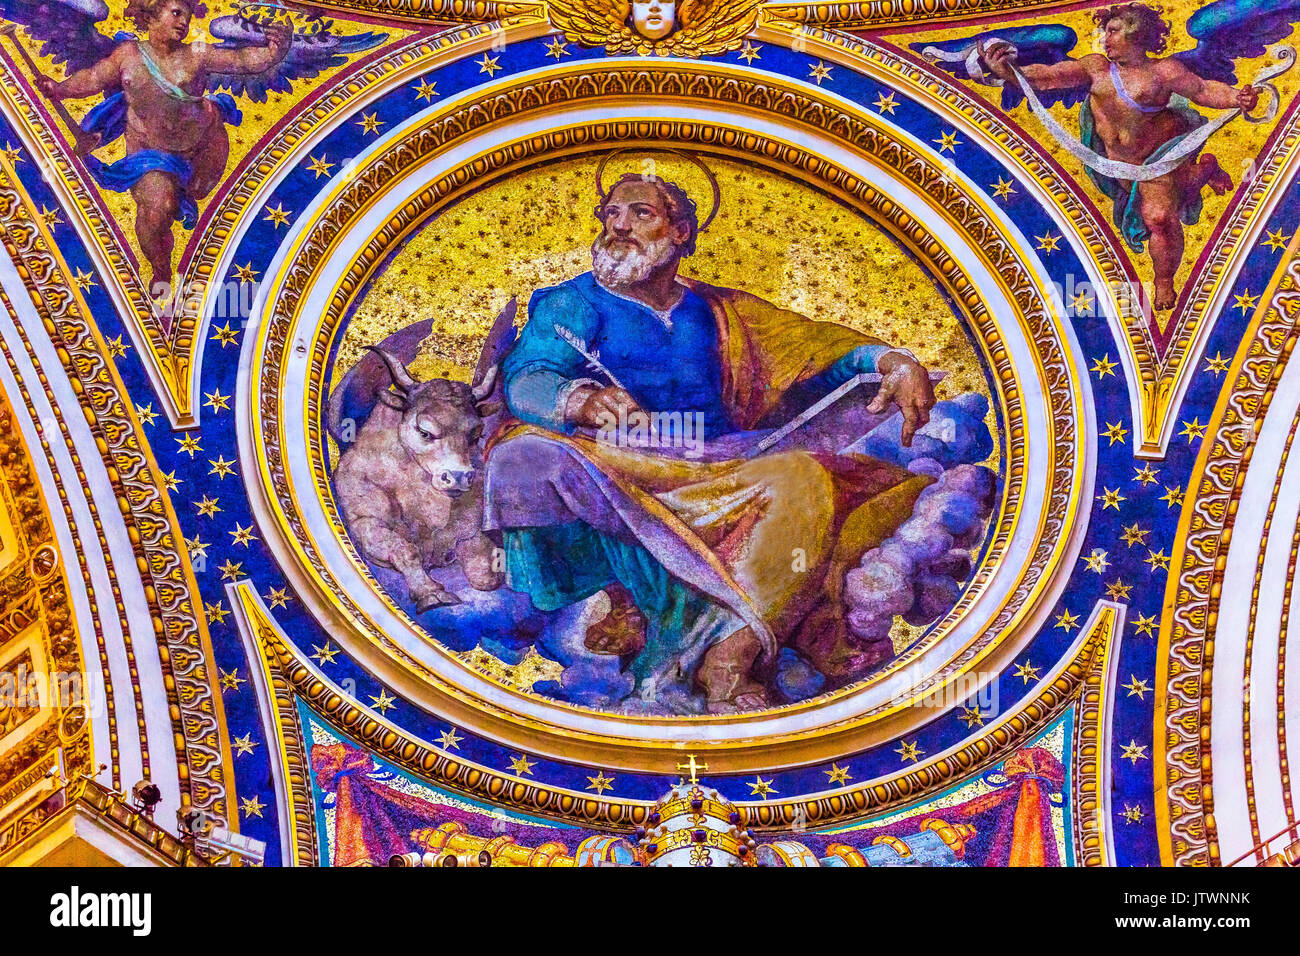 Saint Luke Winged Ox Gospel Writer Evangelist Mosaic Angels Saint Peter's Basilica Vatican Rome Italy.  Mosaic right below Michaelangelo's Dome, Creat - Stock Image